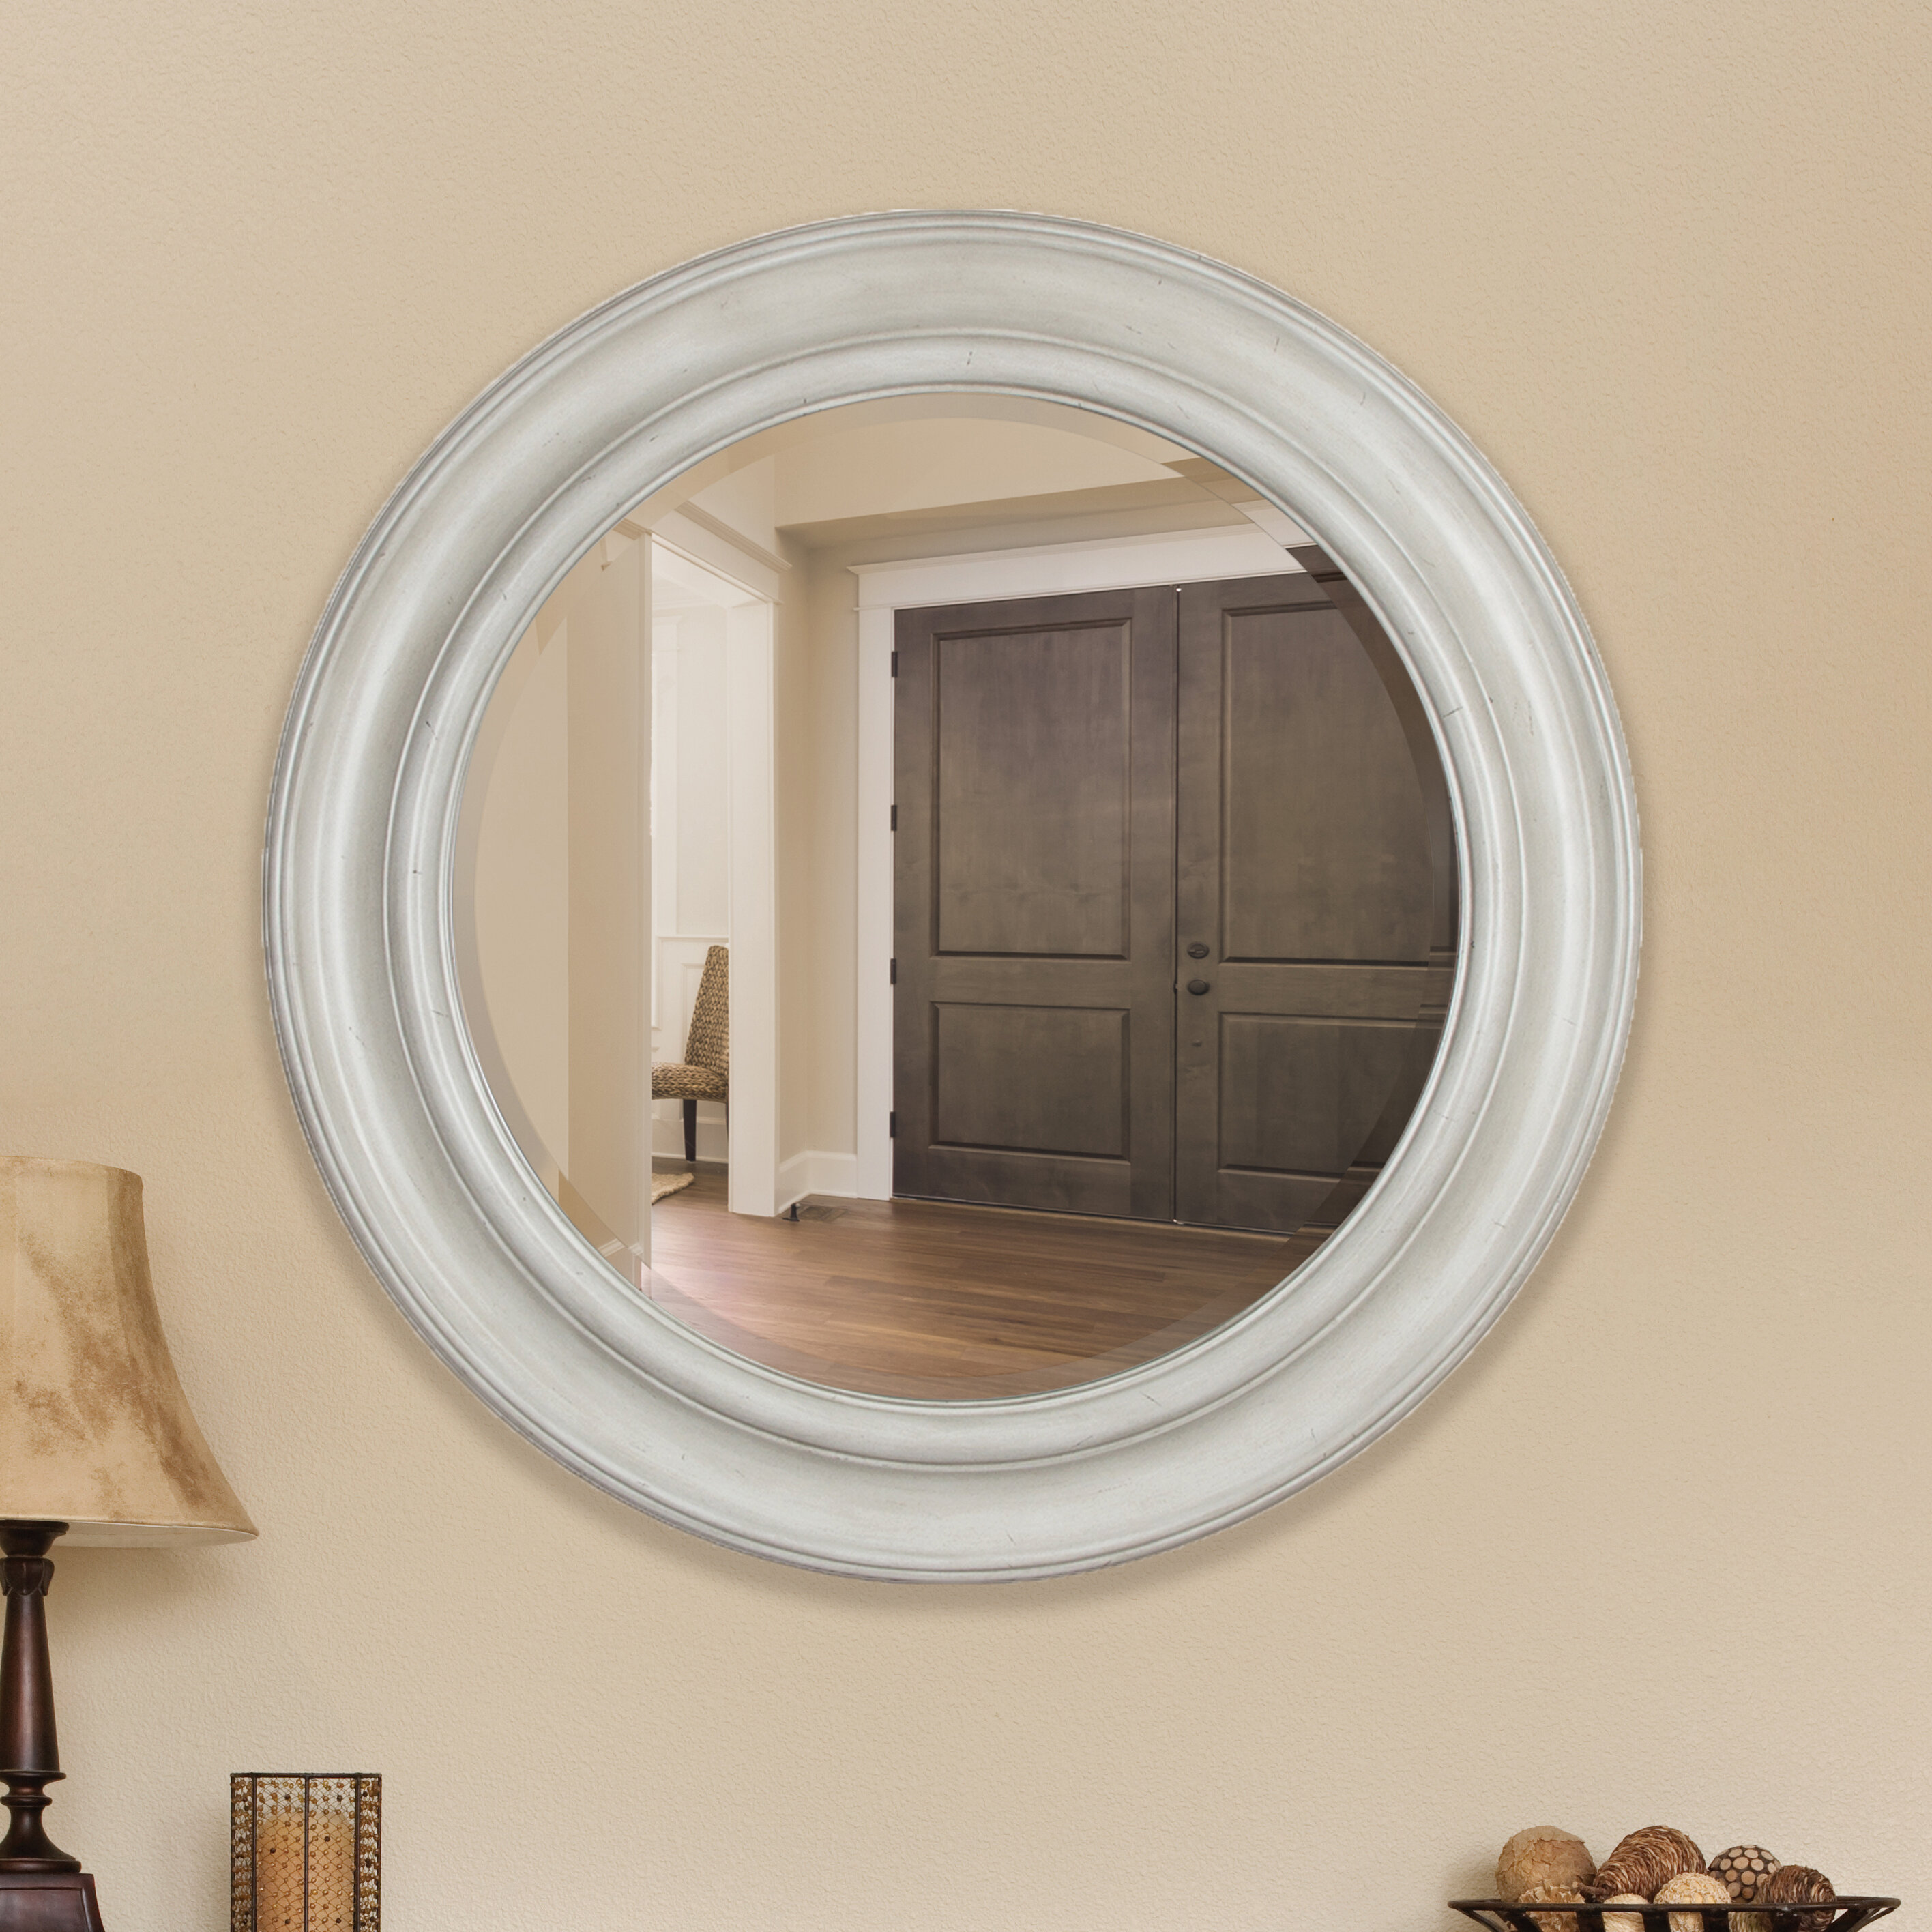 Apprehensive Antique Wooden Wall Hanging Mirror Great Vintage Condition Online Discount Other Antique Furniture Antique Furniture